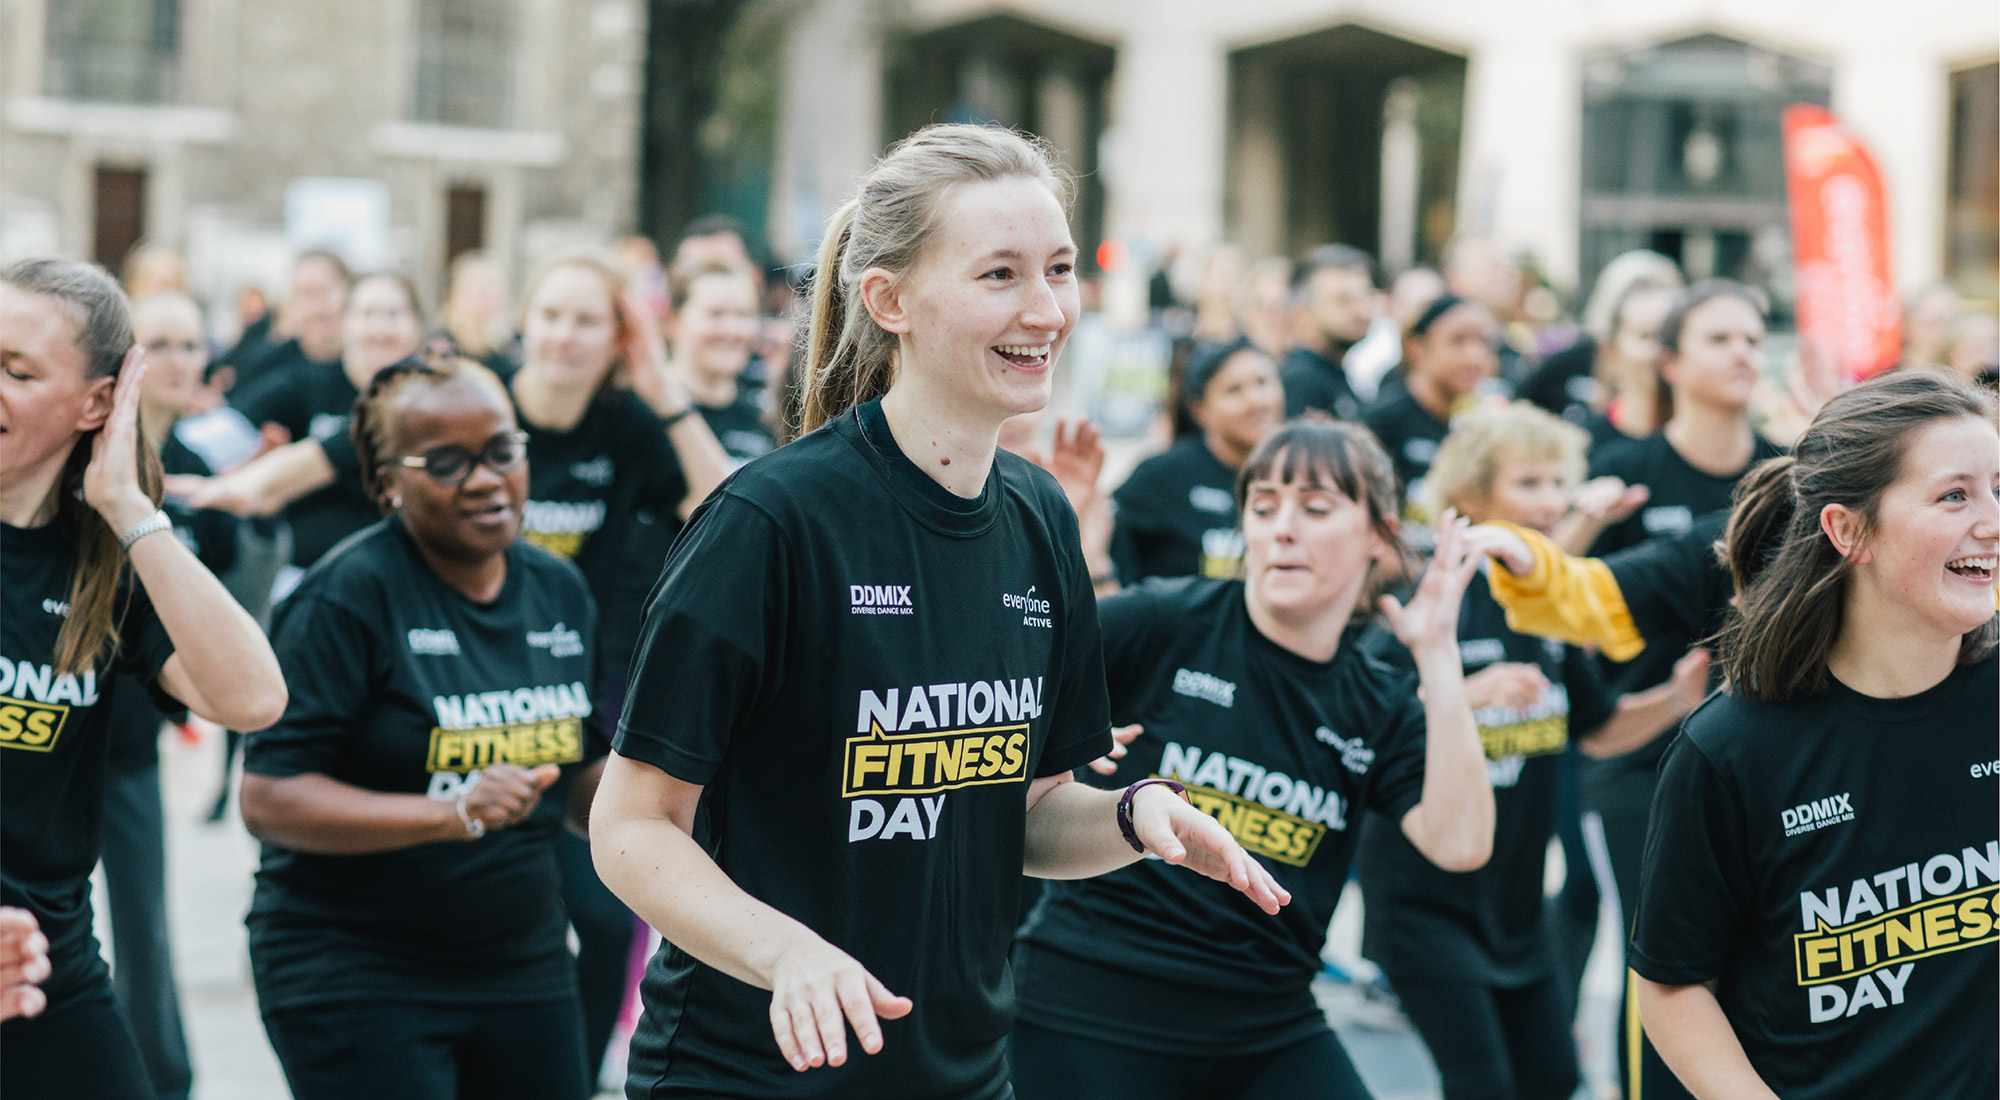 National Fitness Day– 5 Ways to Get Involved